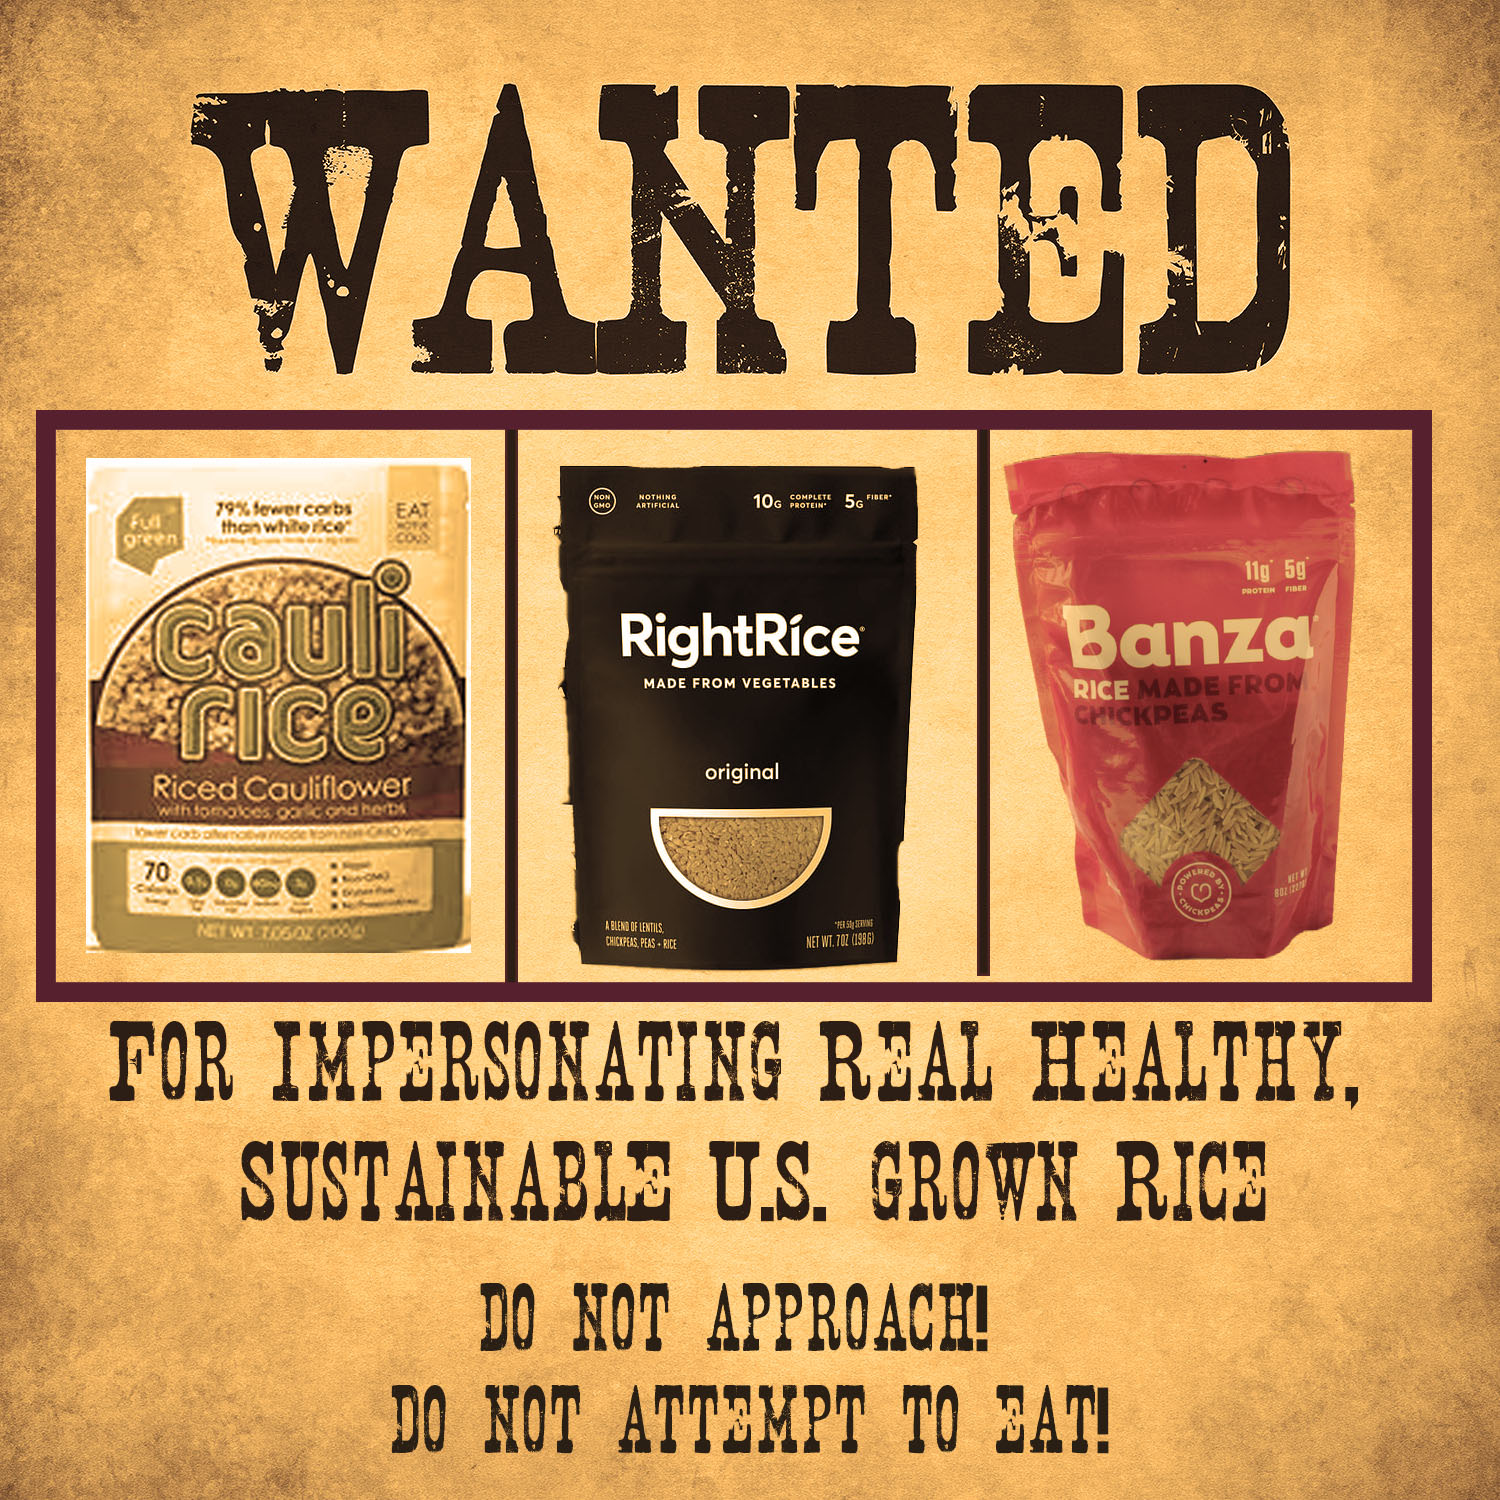 """Wanted Poster with rice pretenders CauliRice, RightRice and Banza """"for impersonating real, healthy, sustainable U.S. grown rice"""""""